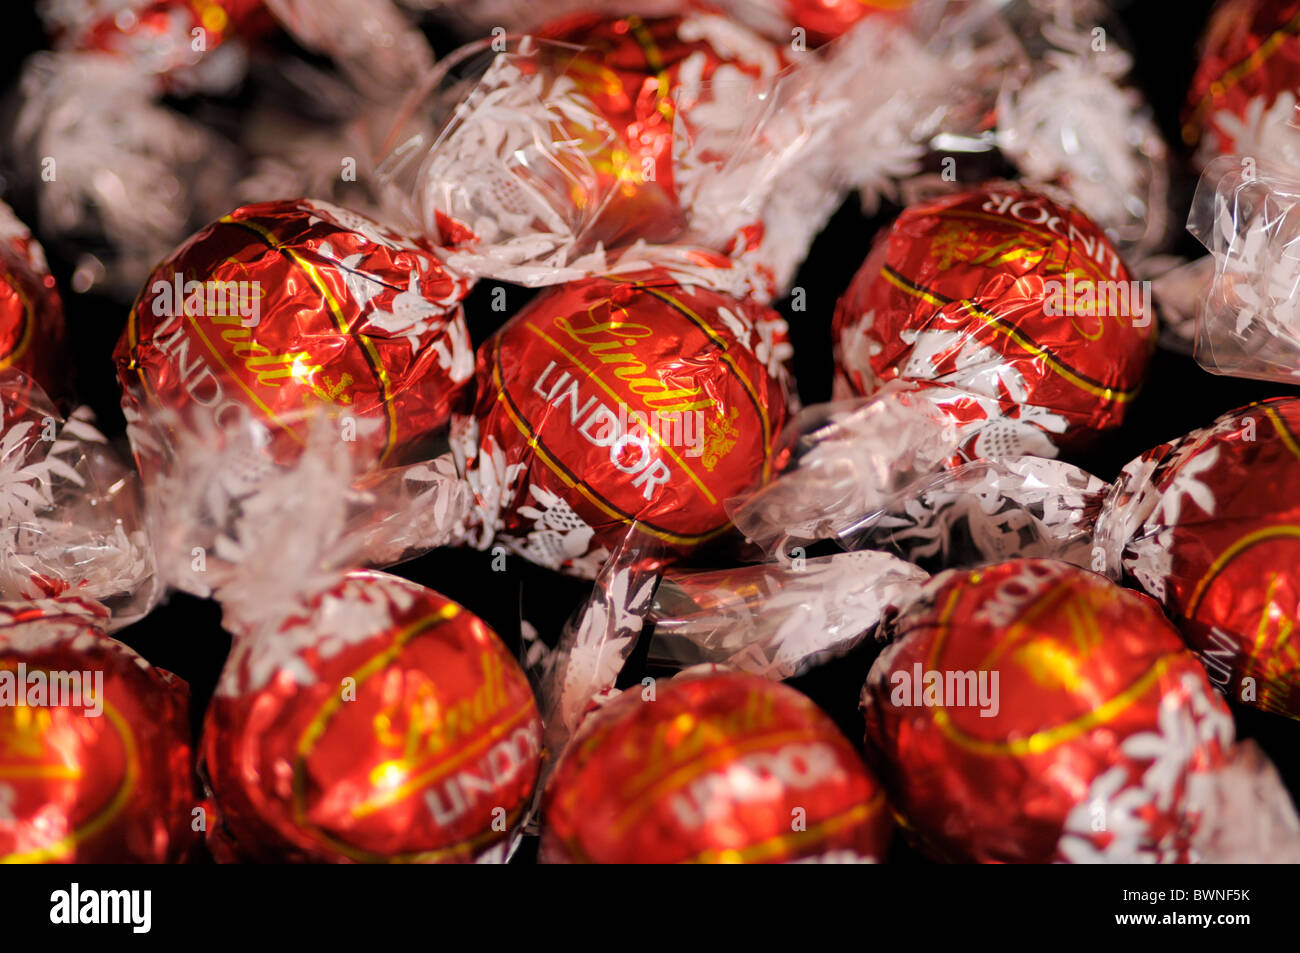 Wrapped Chocolate balls - Stock Image